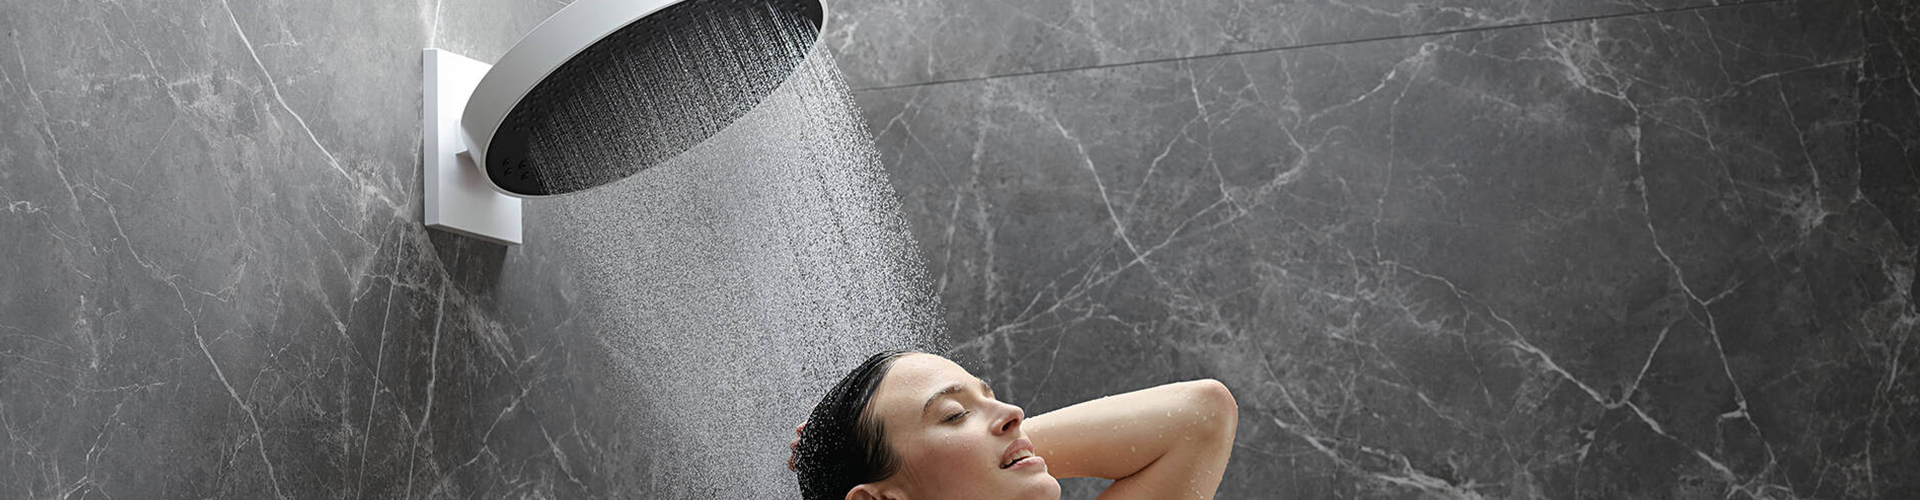 Rainfinity: strak design en een ultiem wellness-gevoel in één douche